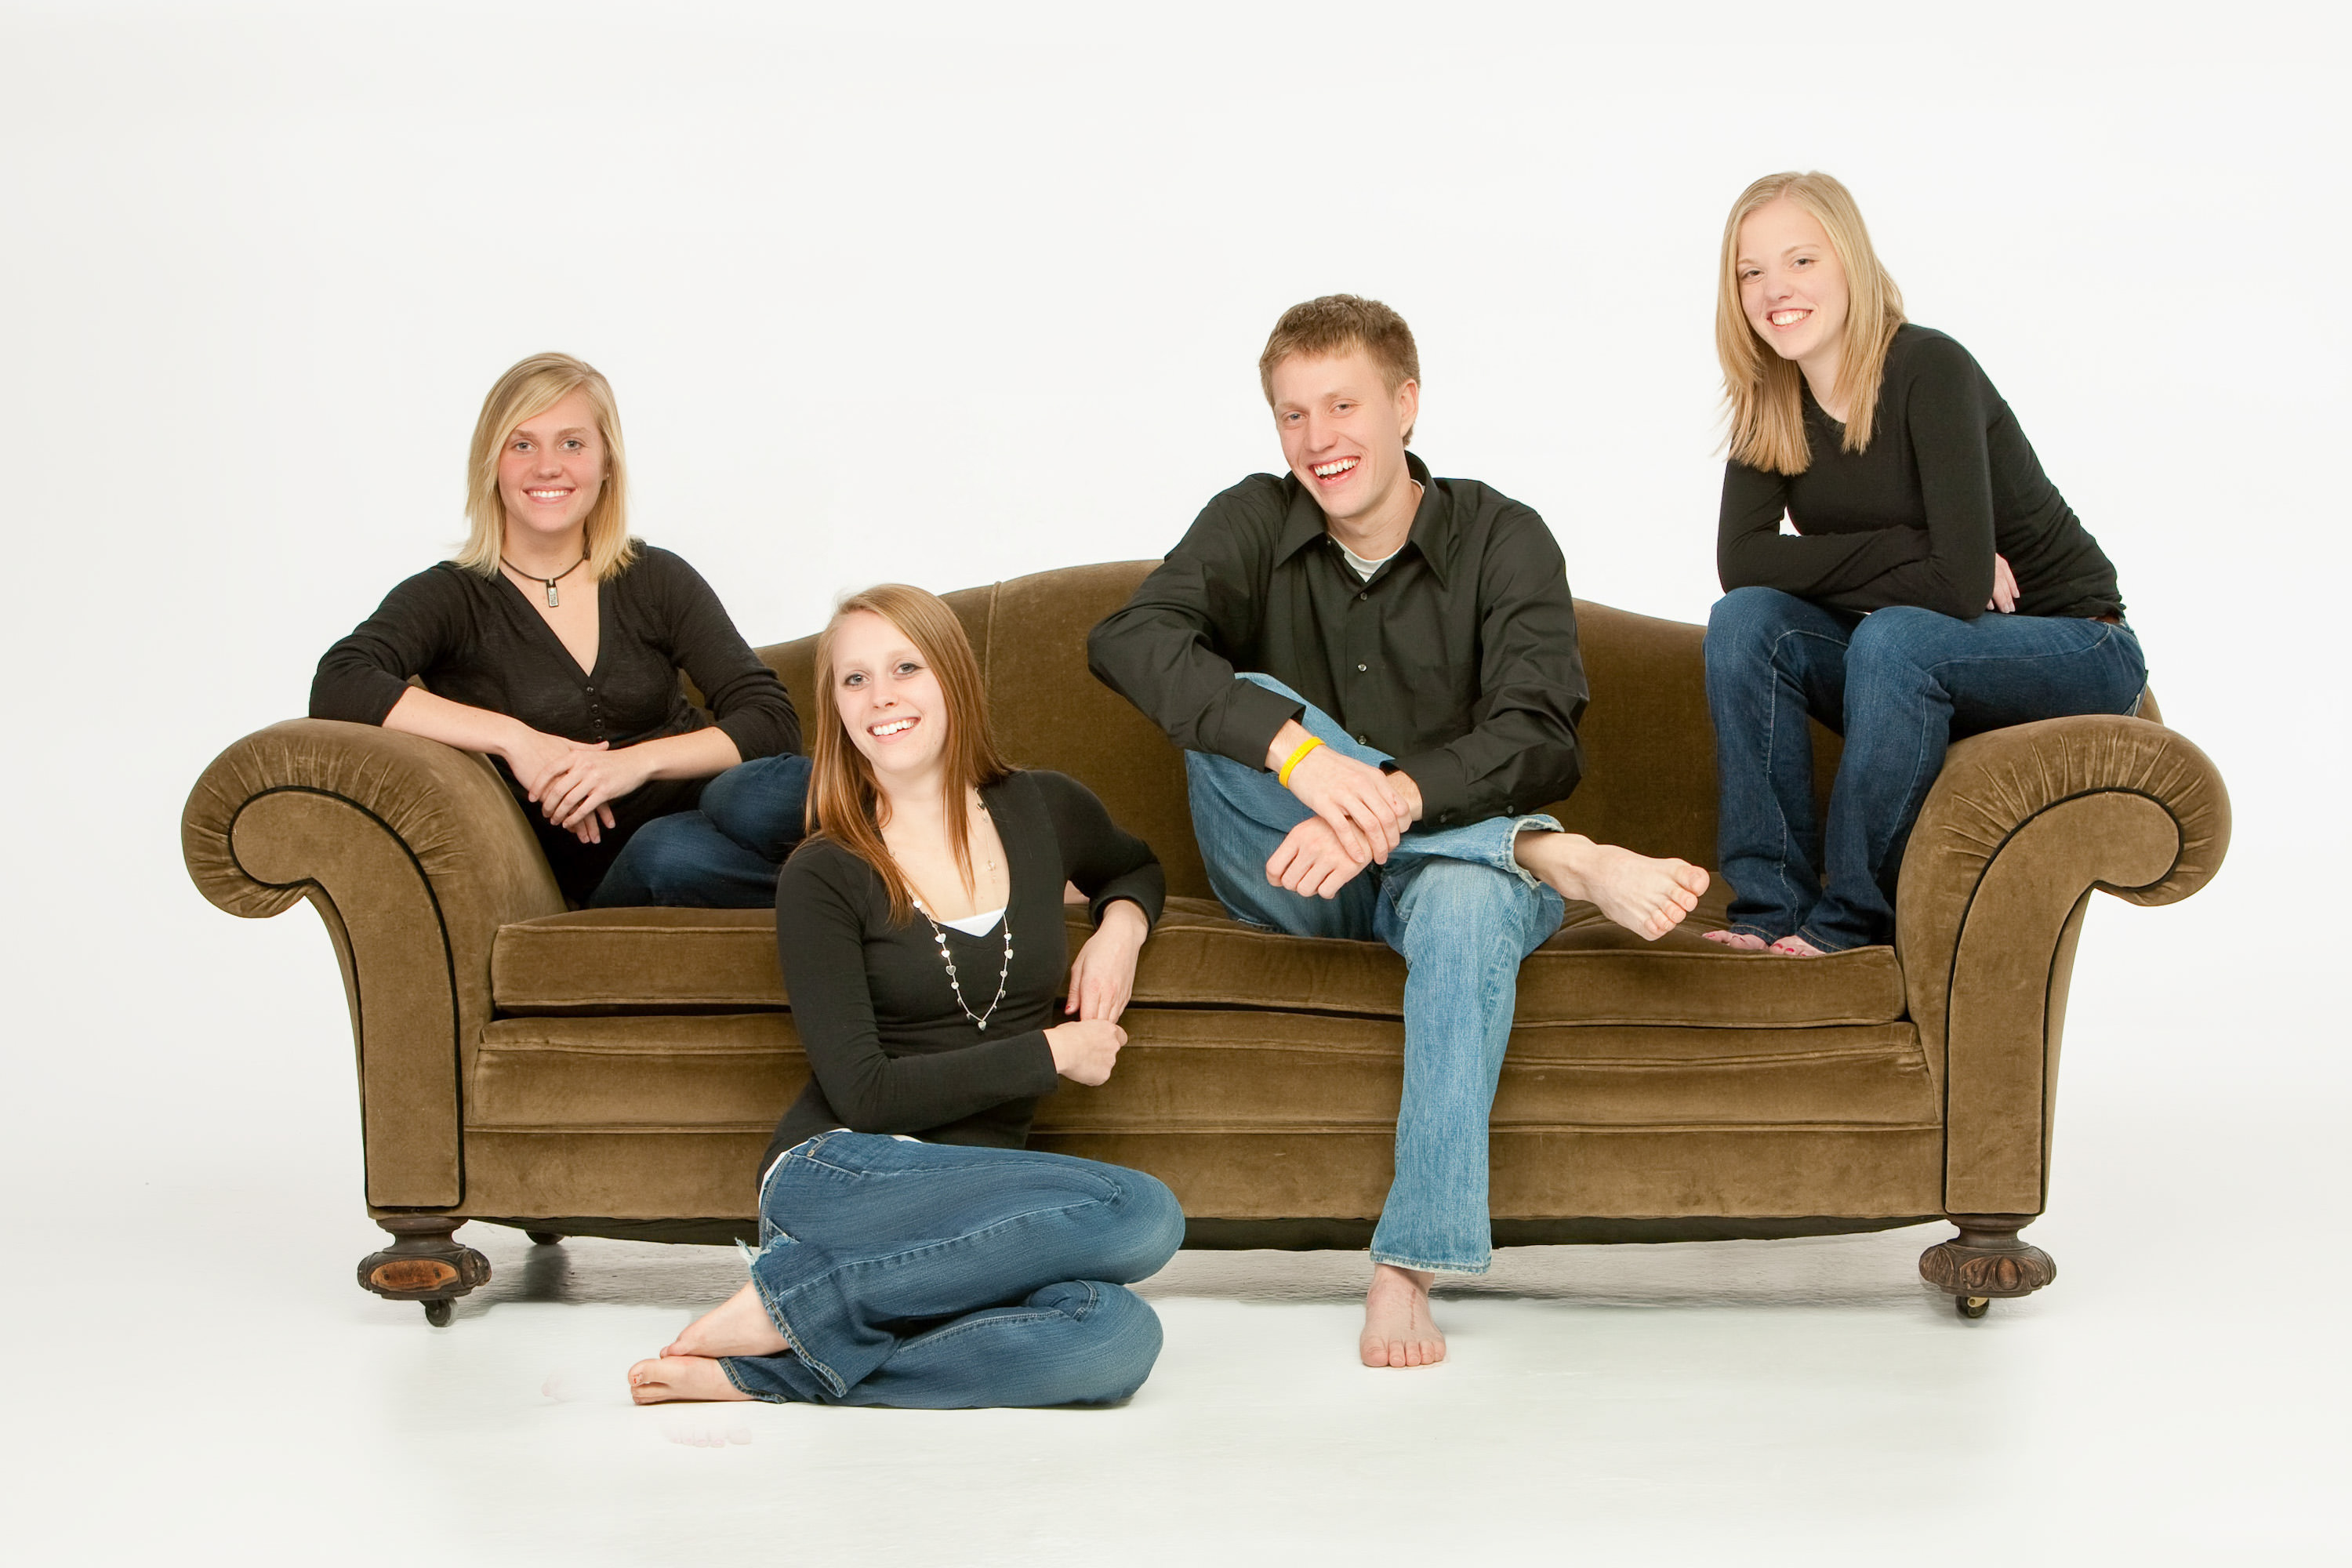 Family of 4 brothers and sisters in a casual, contemporary modern arrangement on a couch.